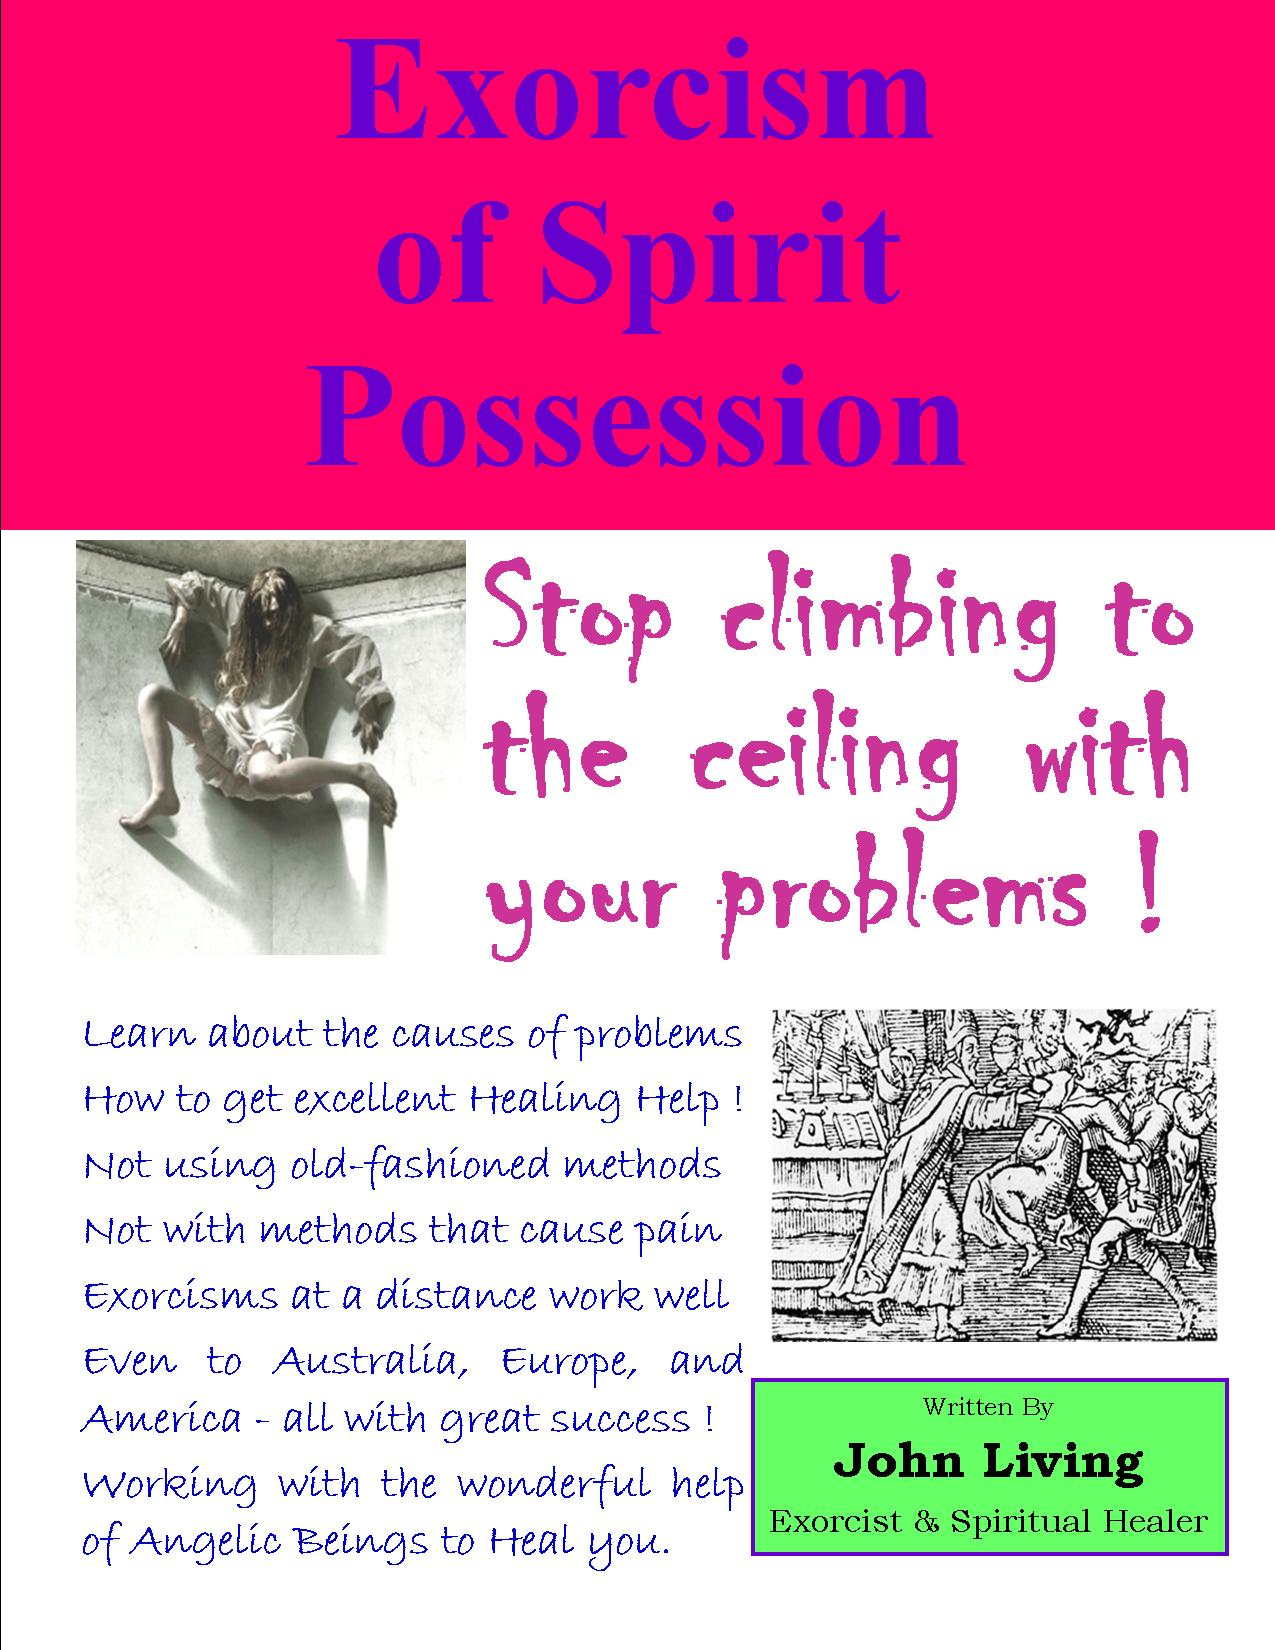 exorcism essay Writing as exorcism the personal codes a remarkable literary performance in its own right, this interpretive essay brings a highly original poetic sensibility to.